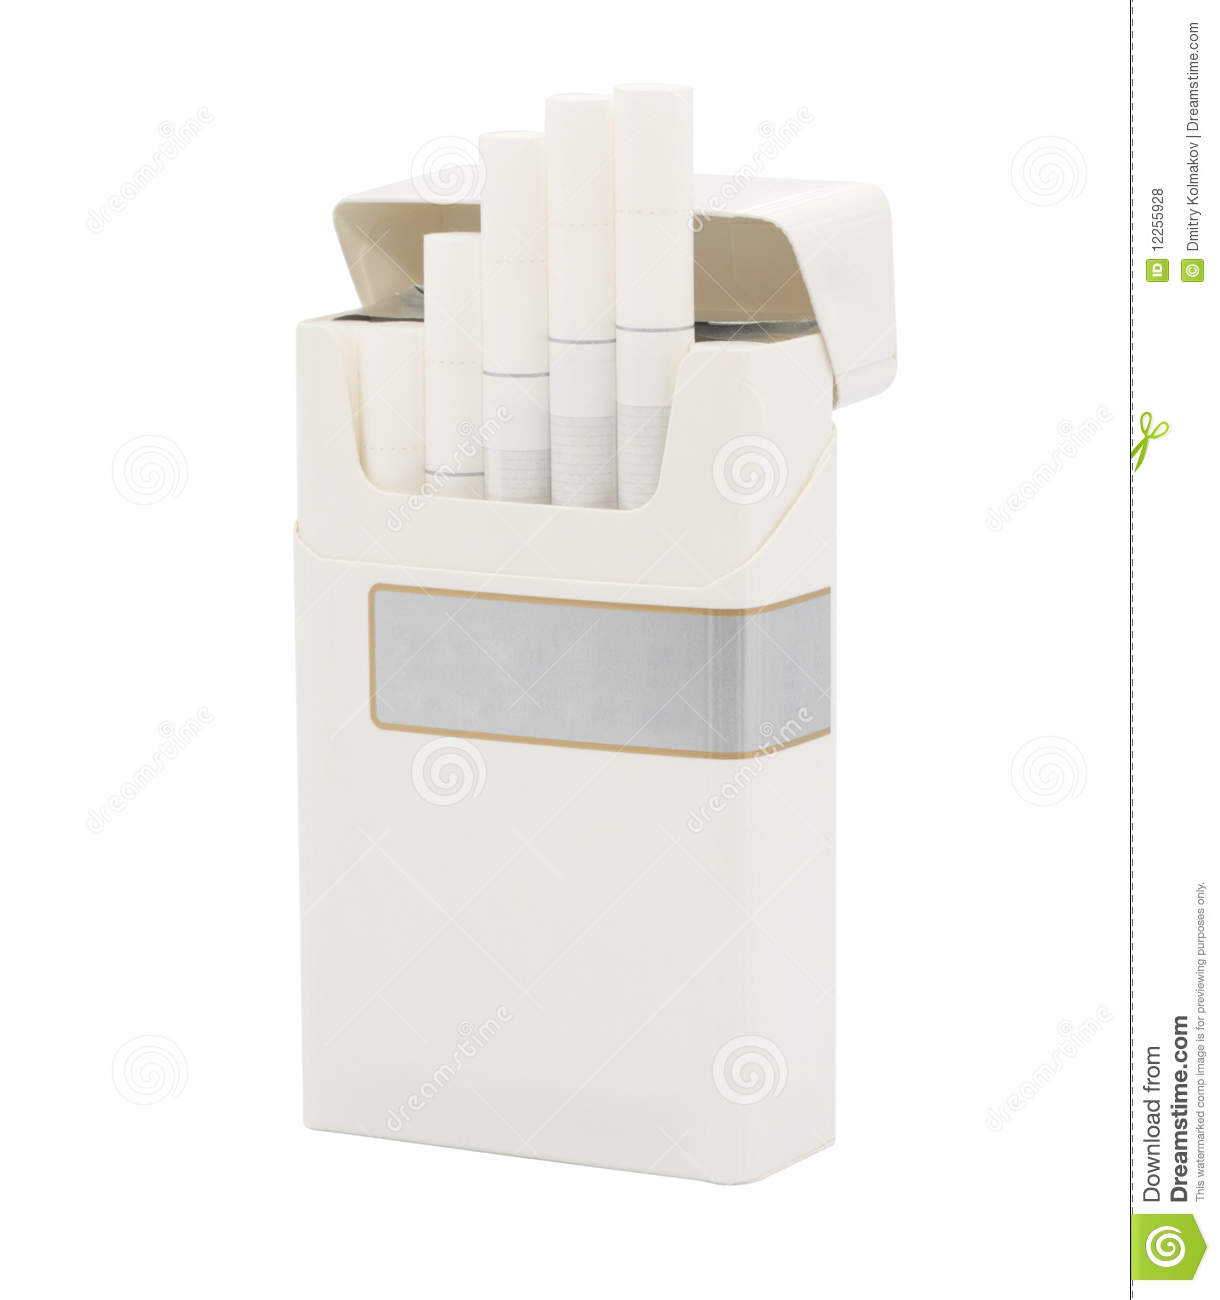 Cigarette Pack Royalty Free Stock Photos - Image: 12255928